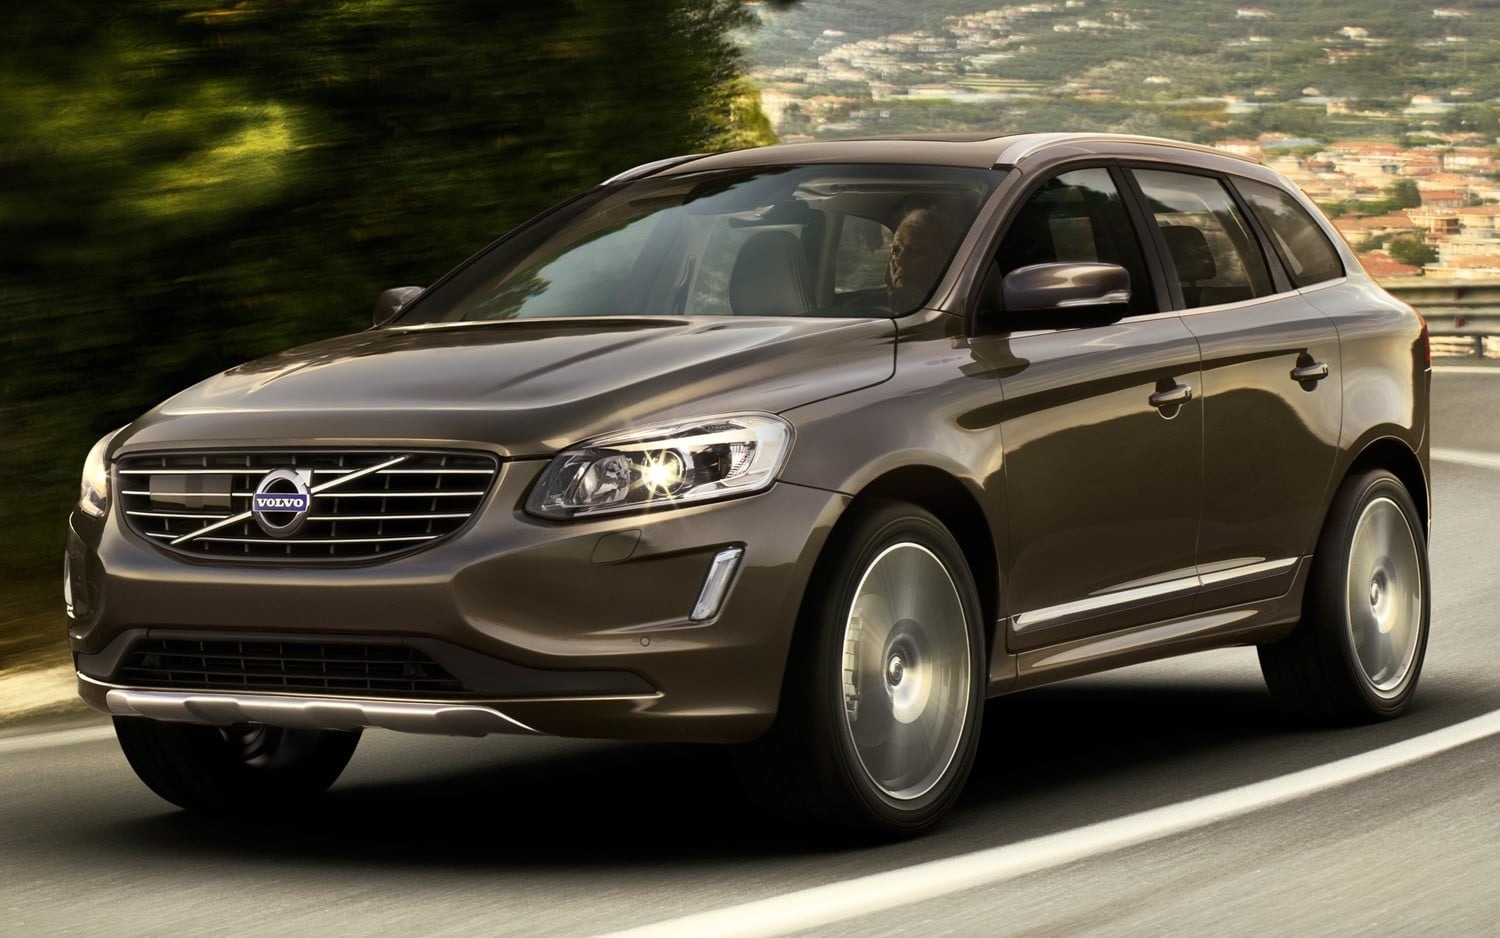 La pub volvo leave the world behind pour le nouveau xc60 for Volvo xc60 interieur